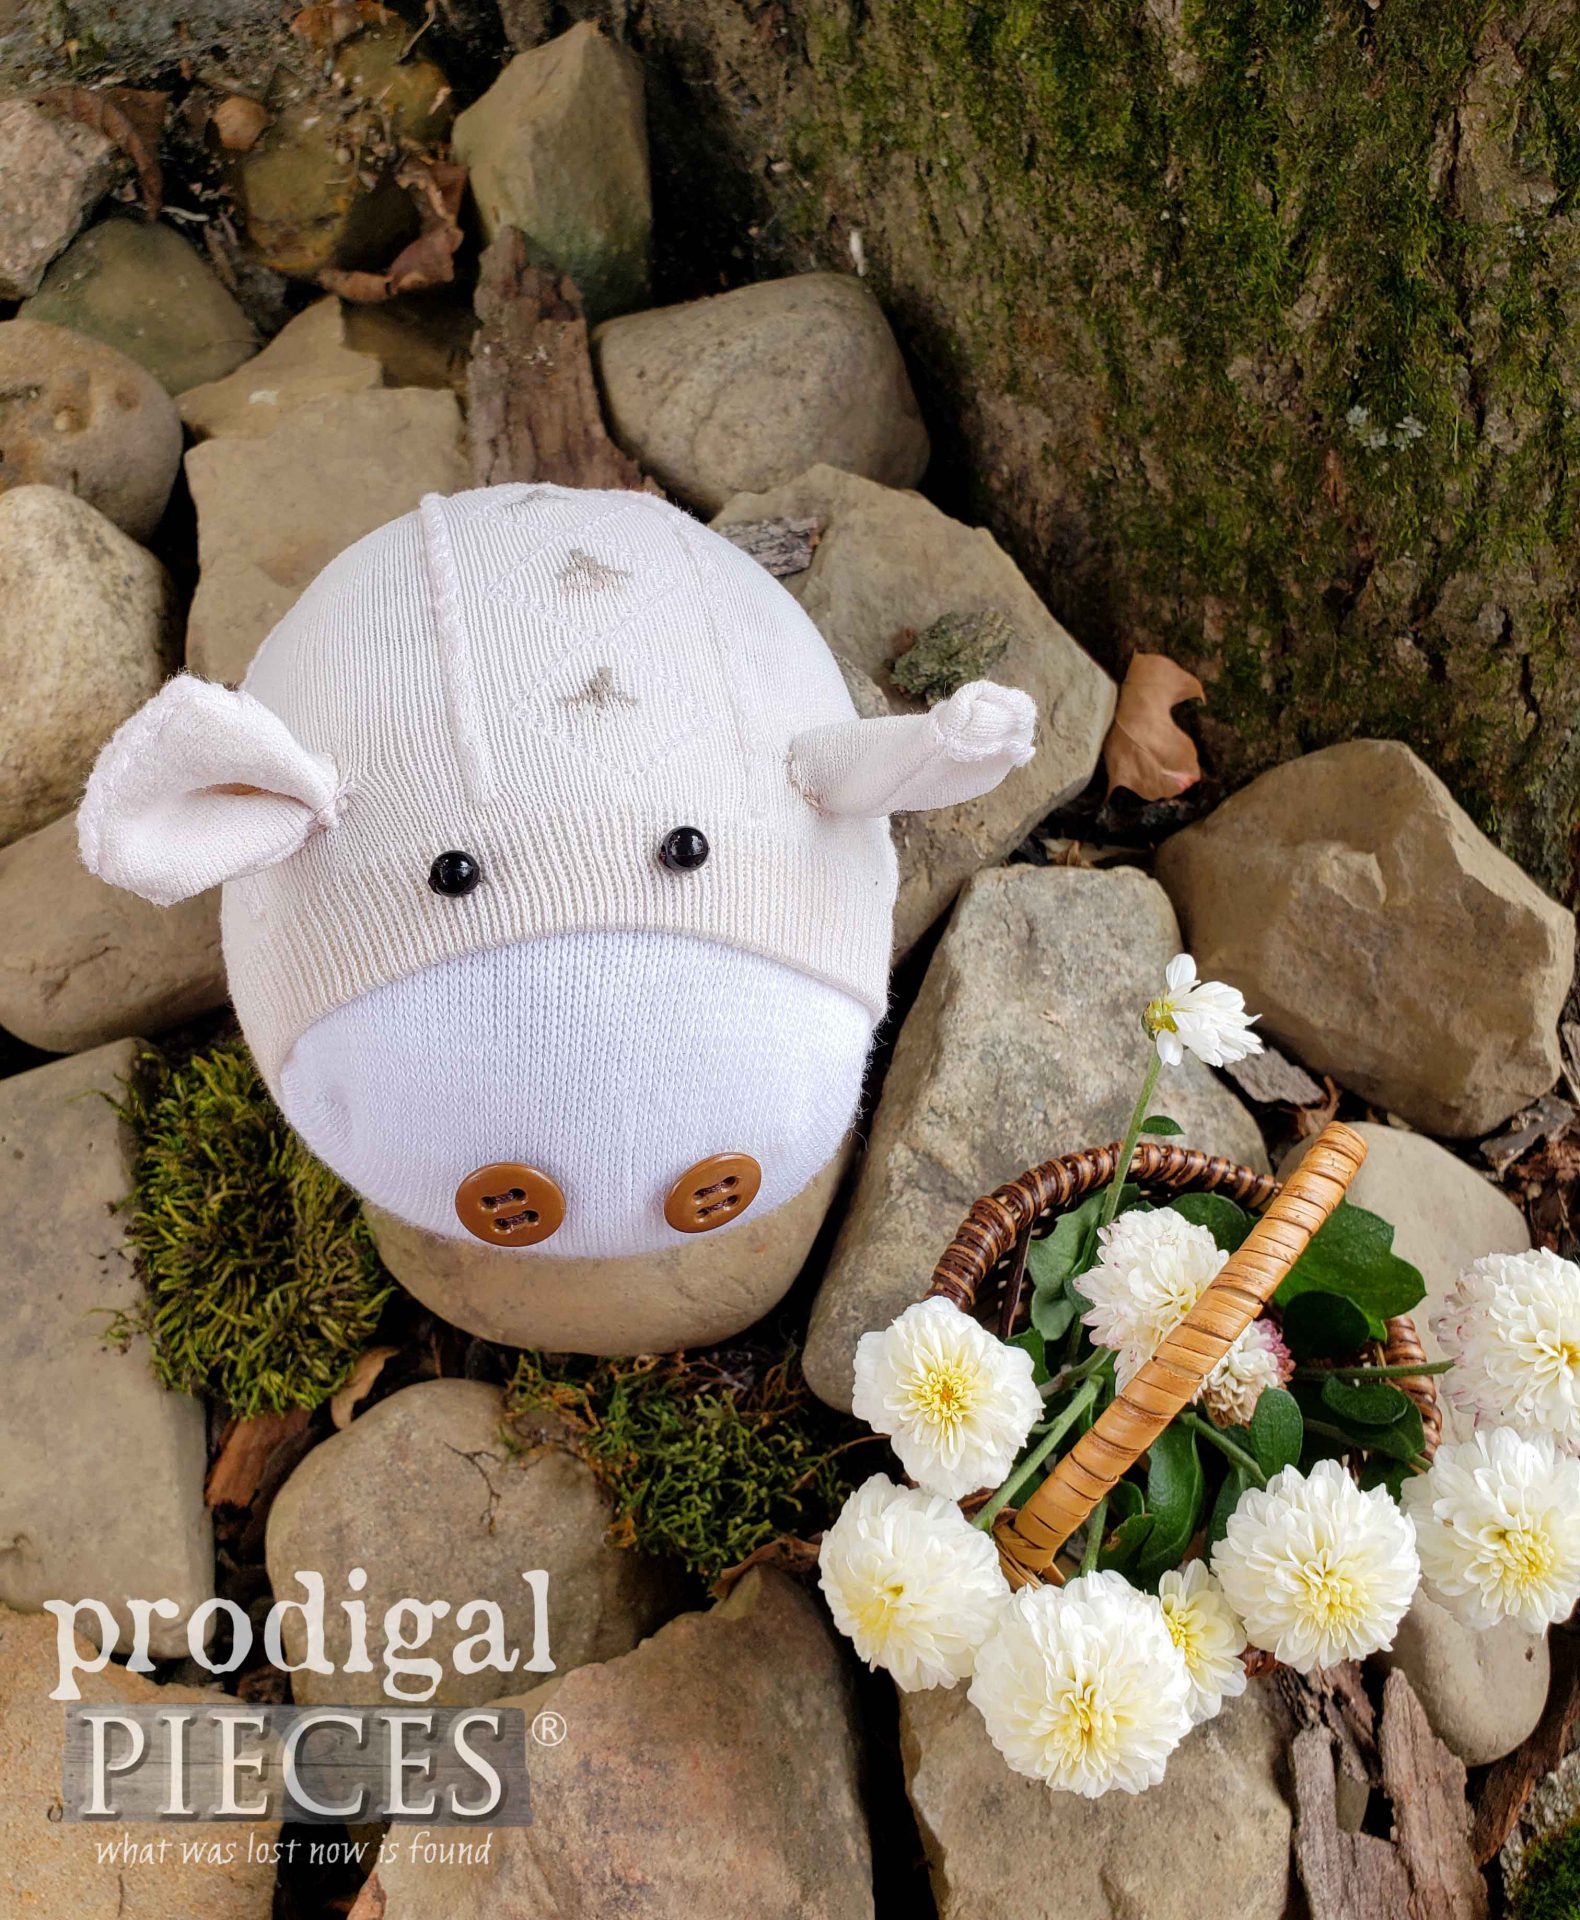 Adorably Sweet Sock Doll Pig by Larissa of Prodigal Pieces | prodigalpieces.com #prodigalpieces #doll #toy #giftidea #sewing